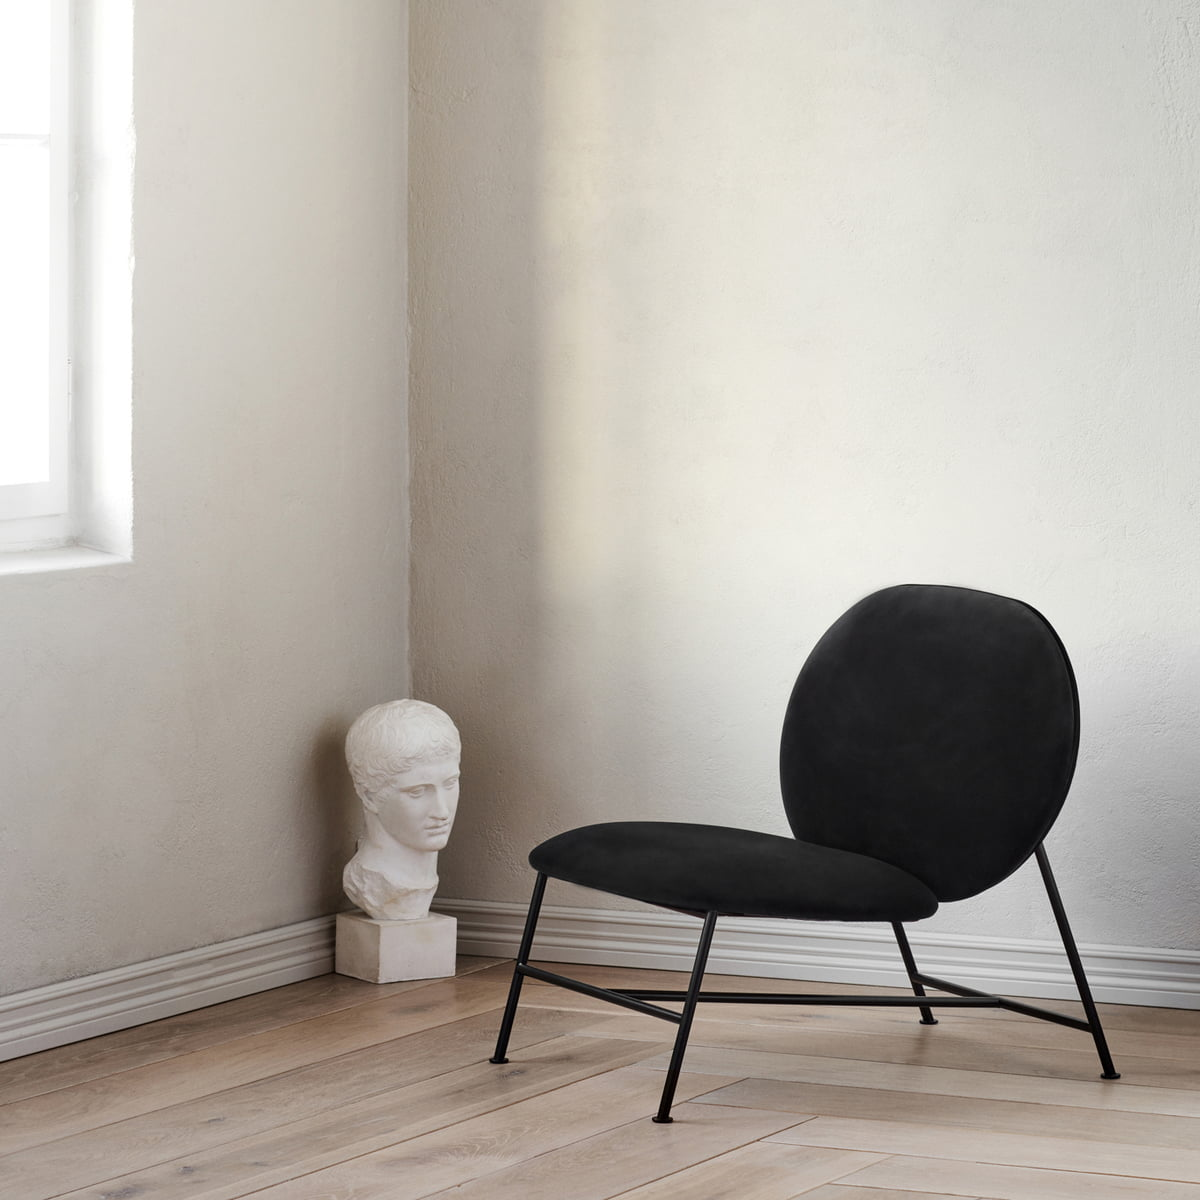 Rising Talents in Chinese Design at Maison et Objet 2019 Conferences - Mario Tsai - Oblong Lounge Chair maison et objet 2019 Rising Talents in Chinese Design at Maison et Objet 2019 Conferences Rising Talents in Chinese Design at Maison et Objet 2019 Conferences Mario Tsai Oblong Lounge Chair